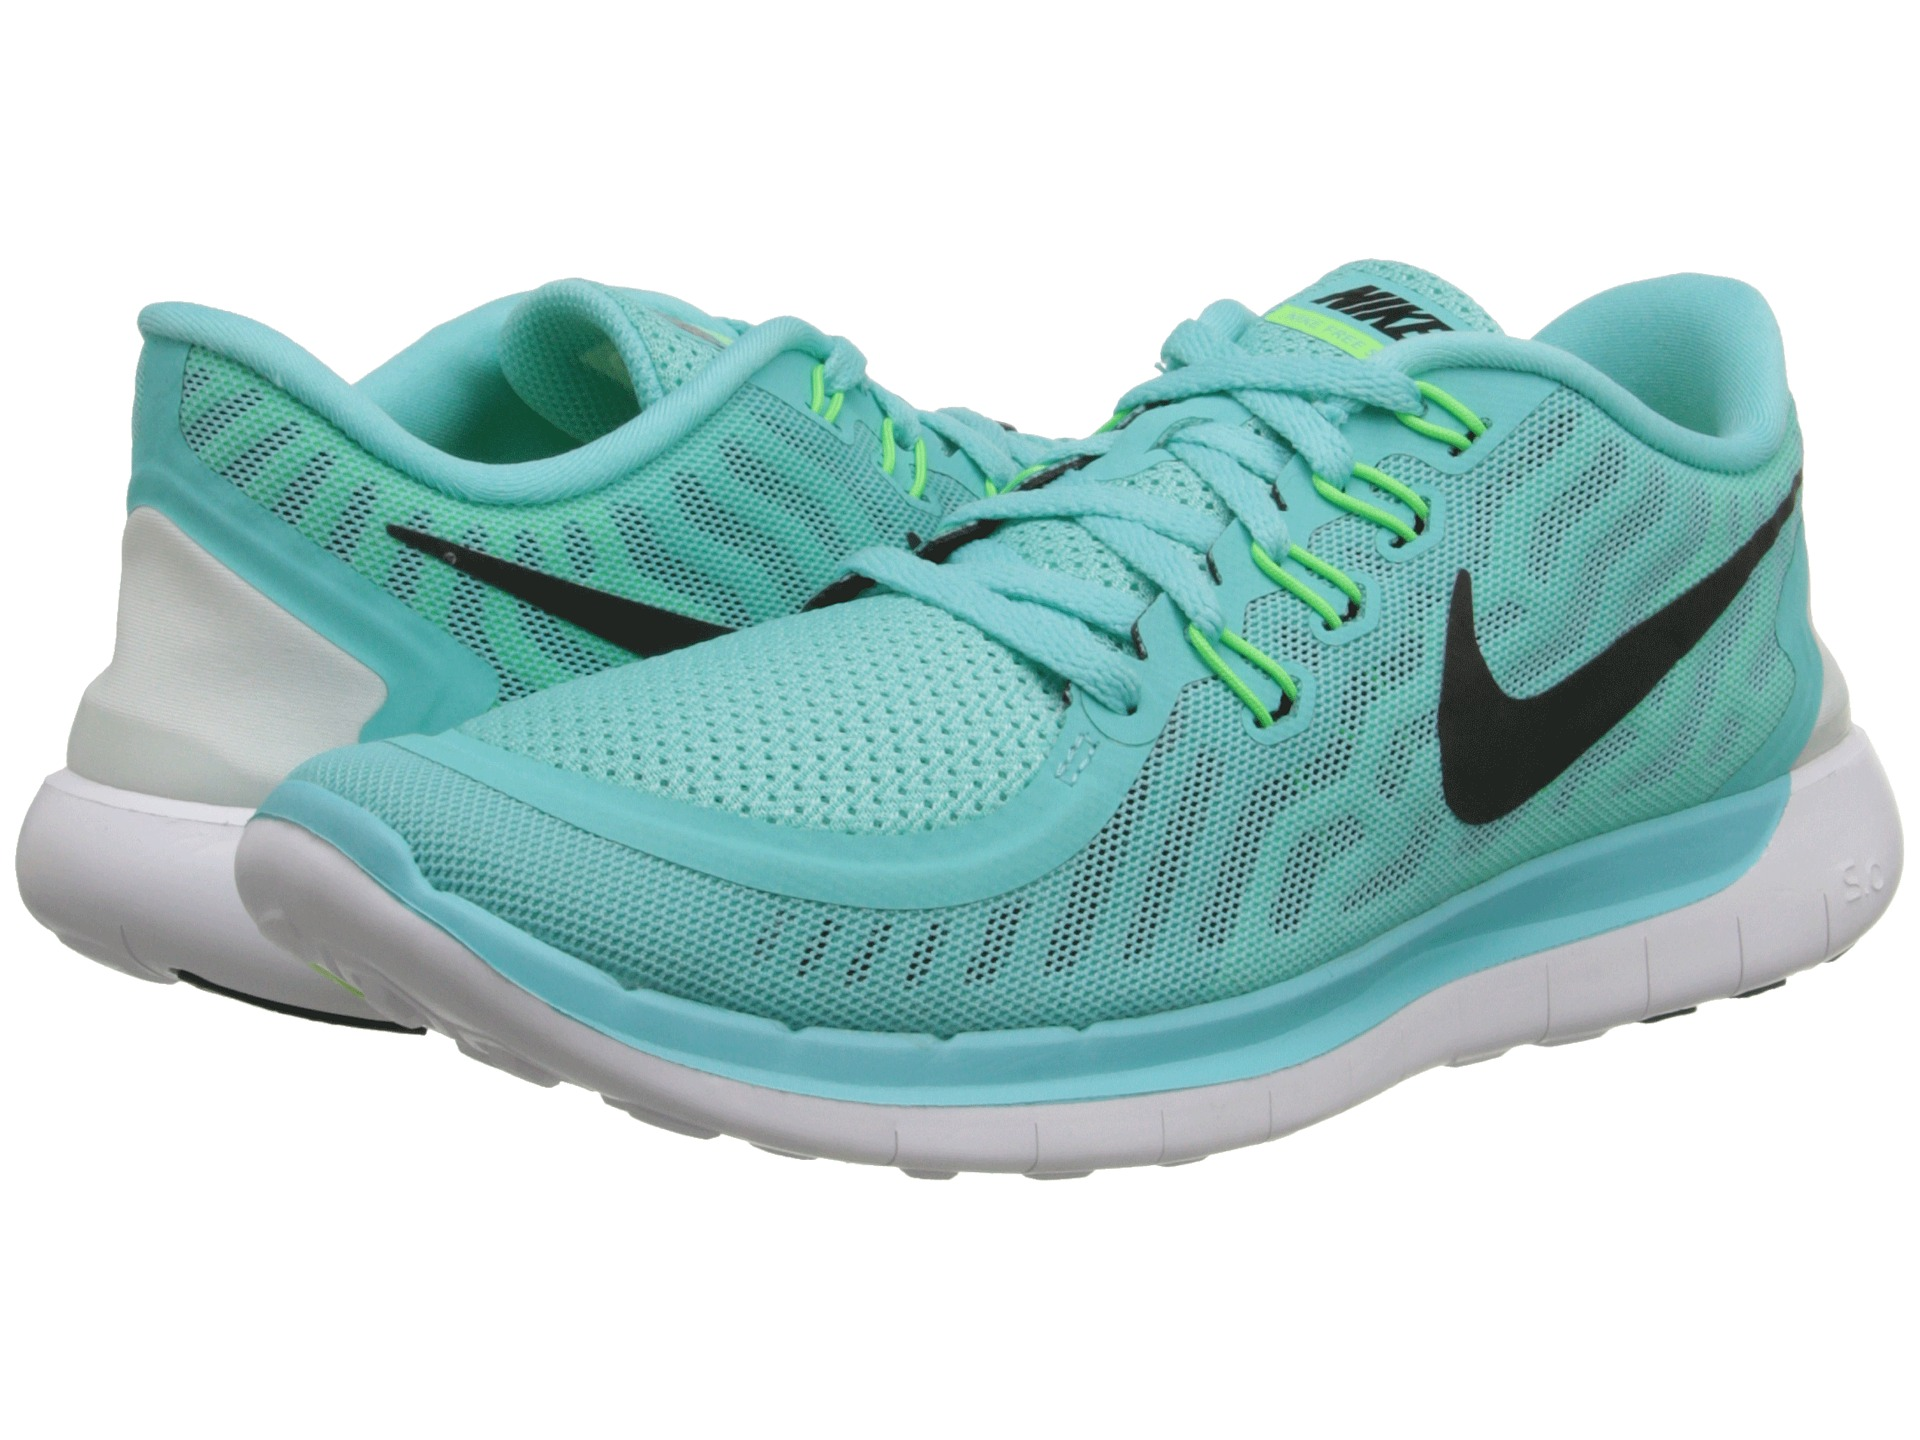 Experience a barefoot-like ride with custom Nike Free shoes. NIKEiD lets you customize the design and colors to match your style. Pick from a number of Nike Free styles and check out custom NIKEiD bags and backpacks.